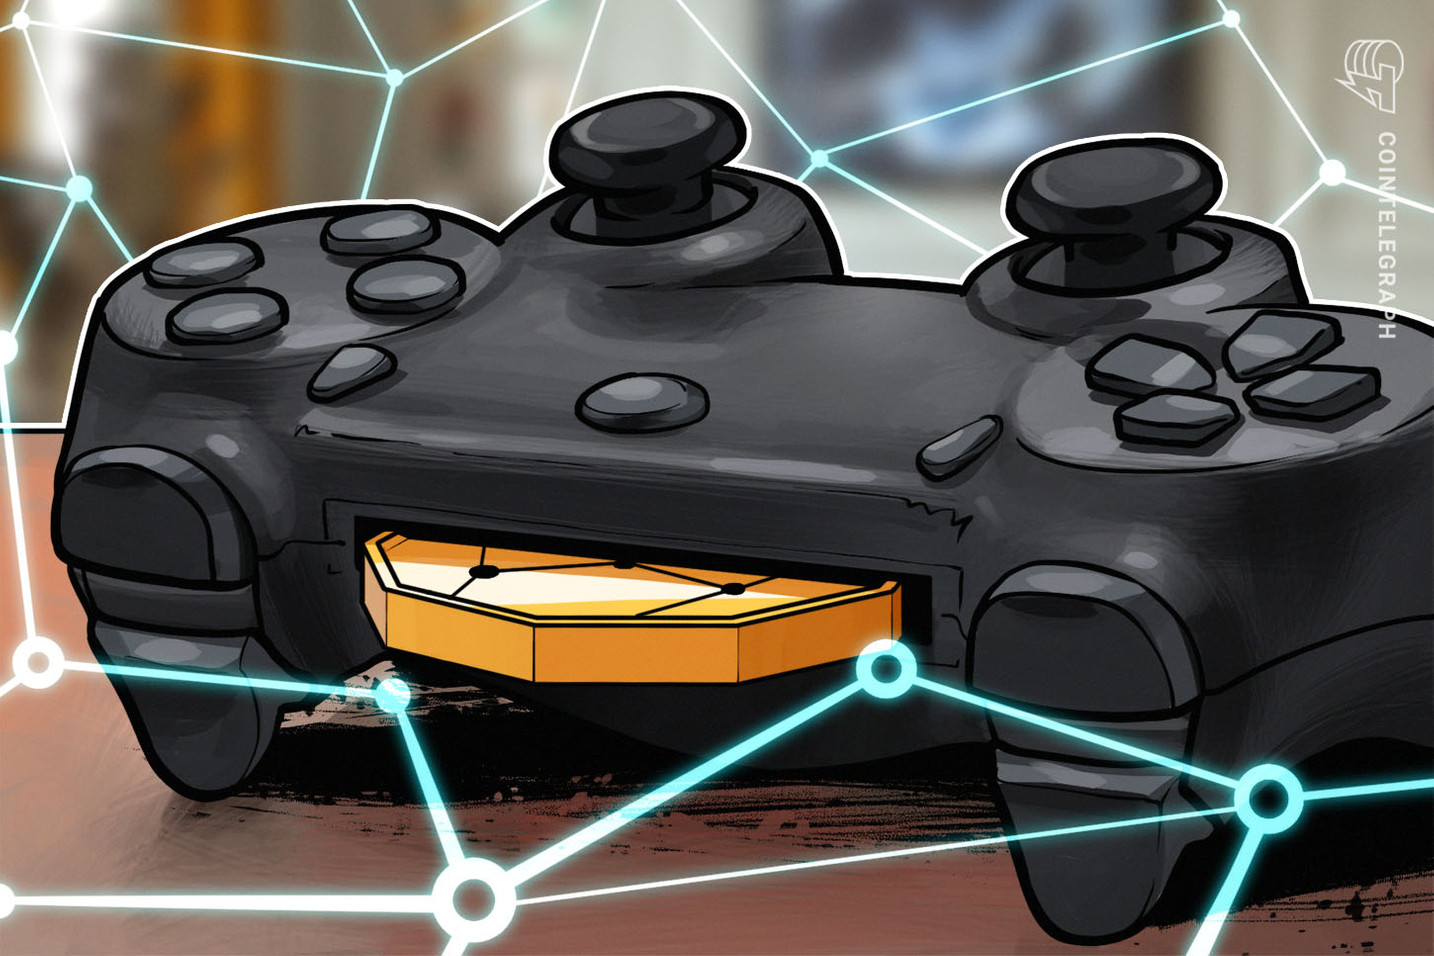 Blockchain gaming takes a colossal step forward as media giant announces new offering